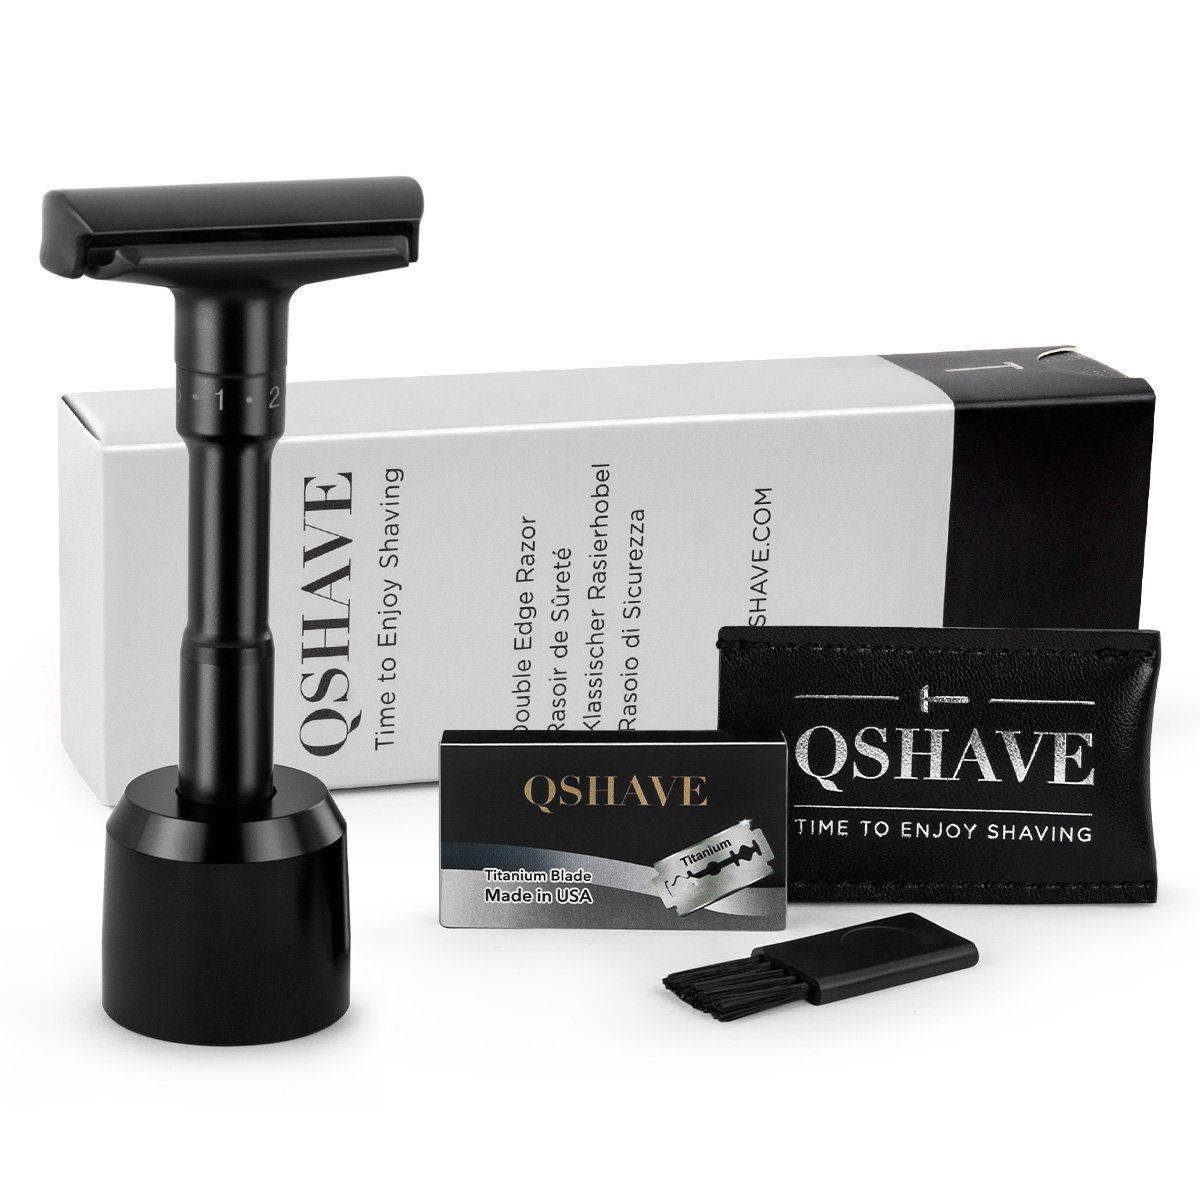 QSHAVE Adjustable Double Edge Safety Shaving Razor Deluxe Set (Razor with Stand)